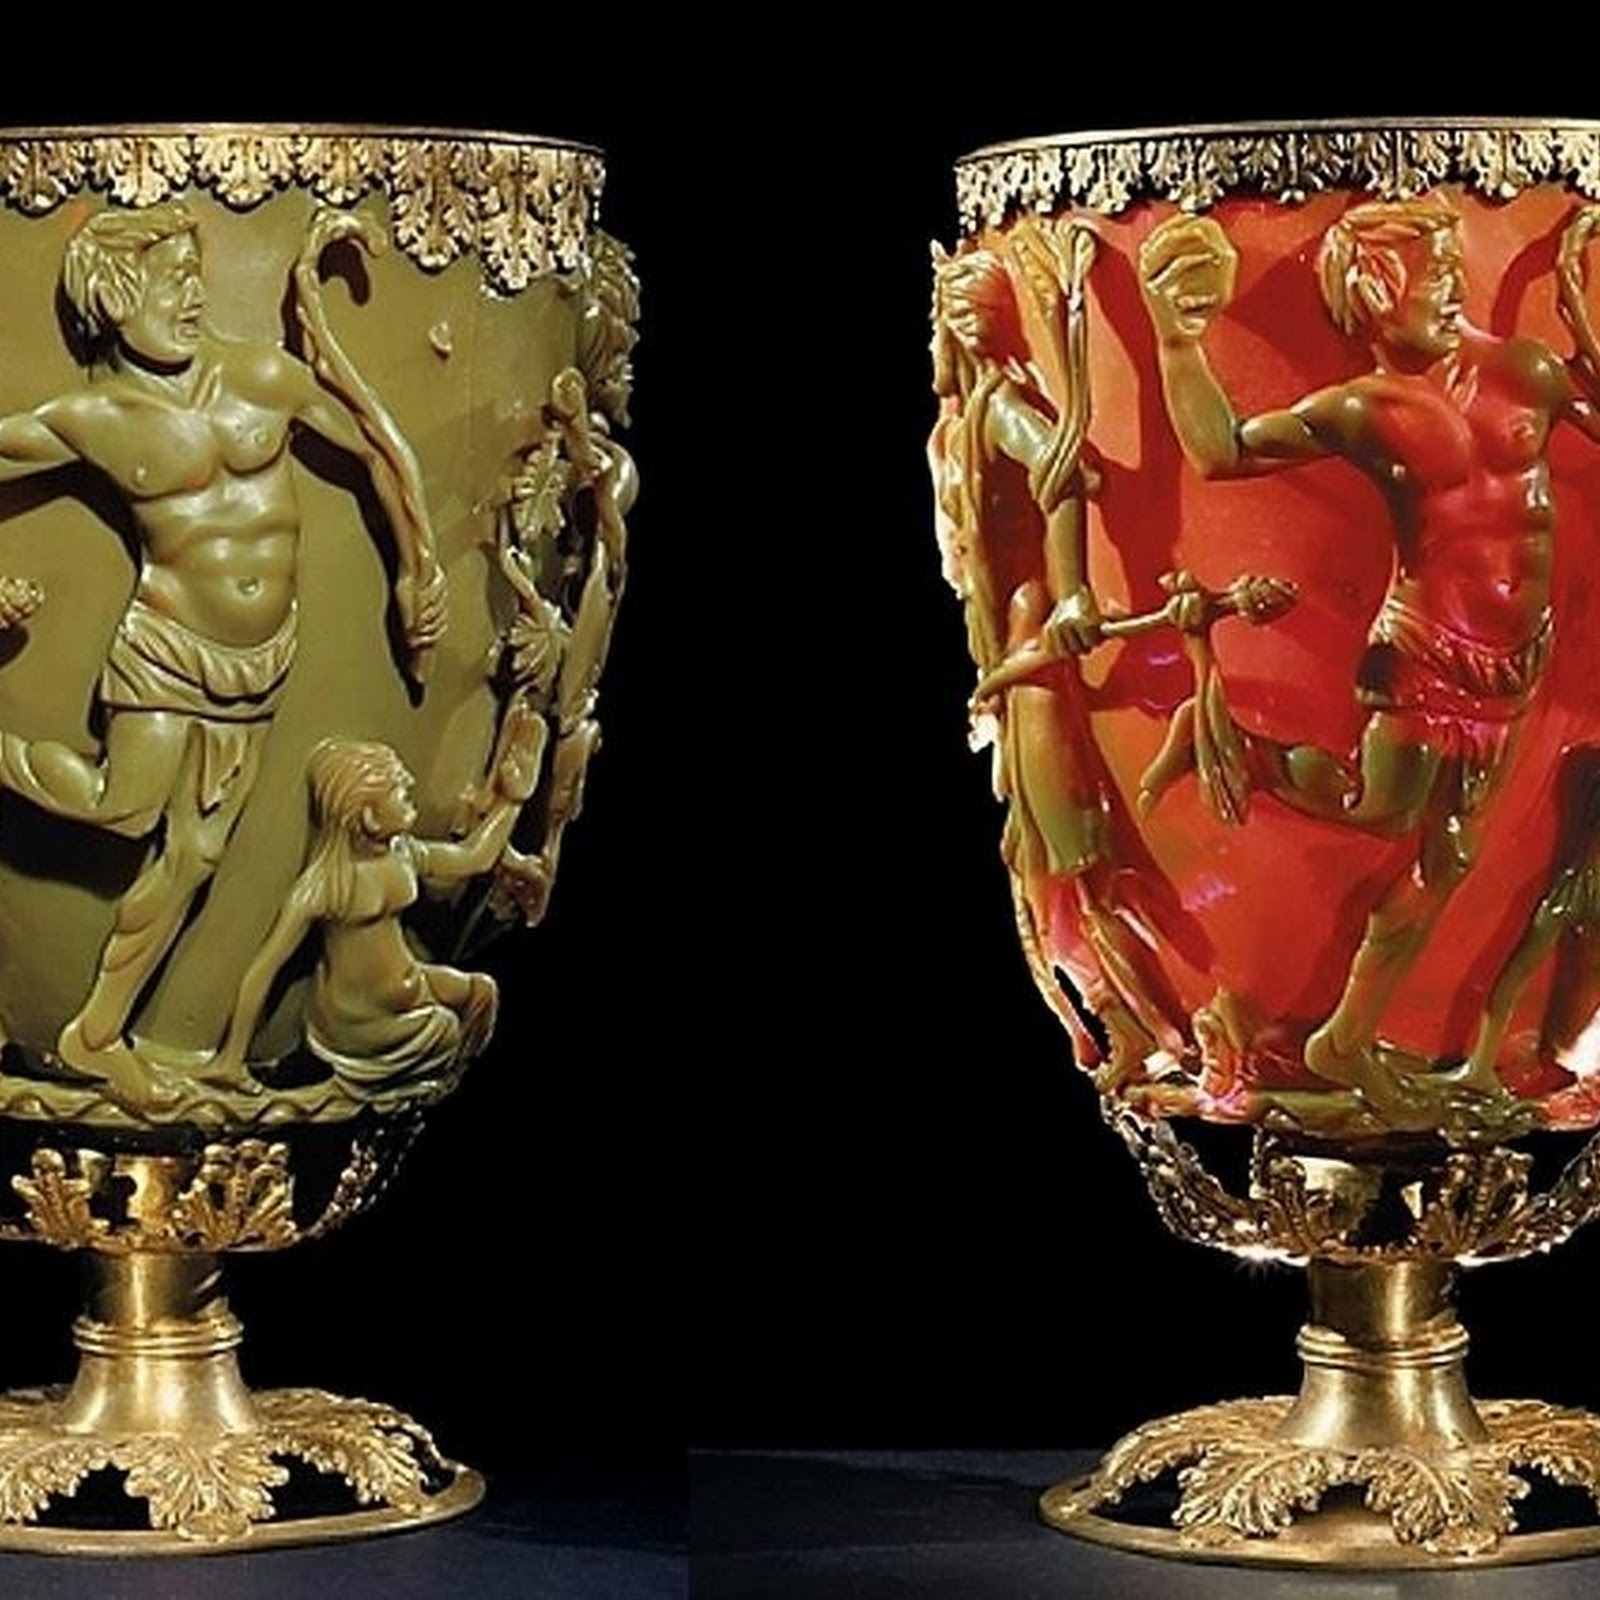 Lycurgus Cup: A Piece of Ancient Roman Nanotechnology